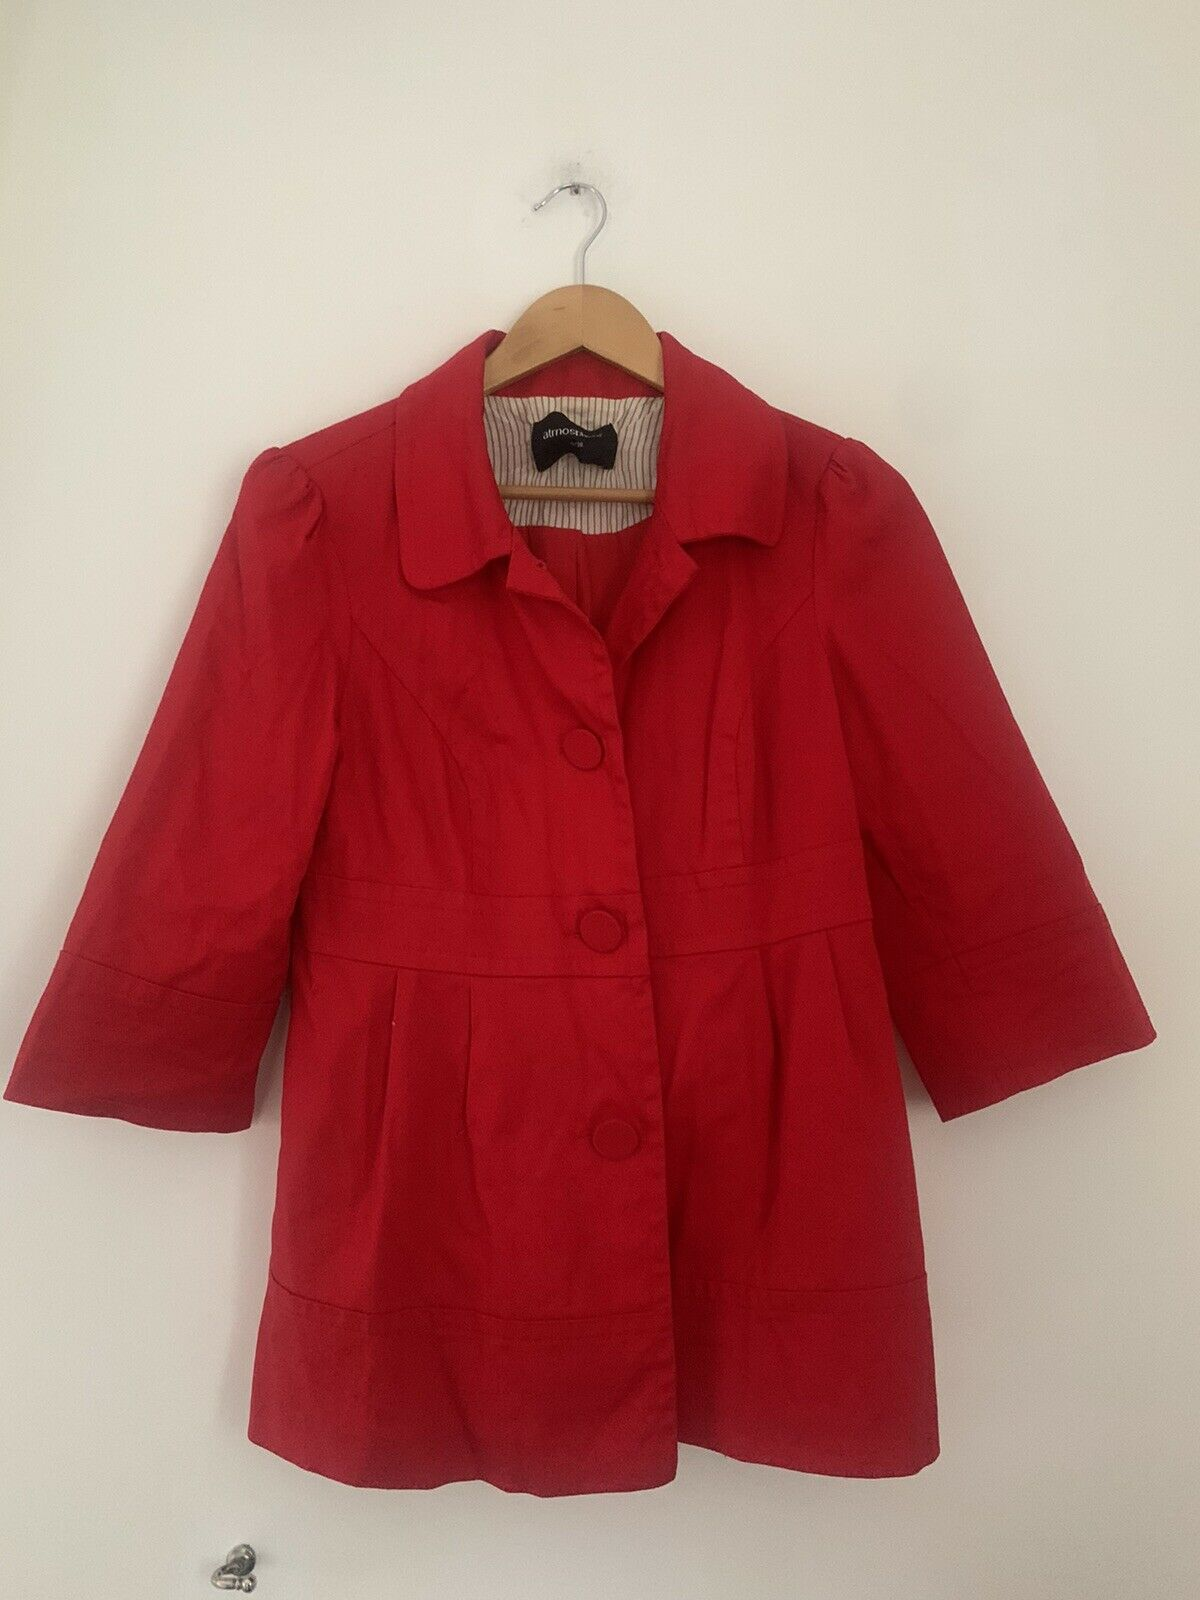 Womens Coat Light Weight Atmosphere 10 Red Cotton <JS4399z